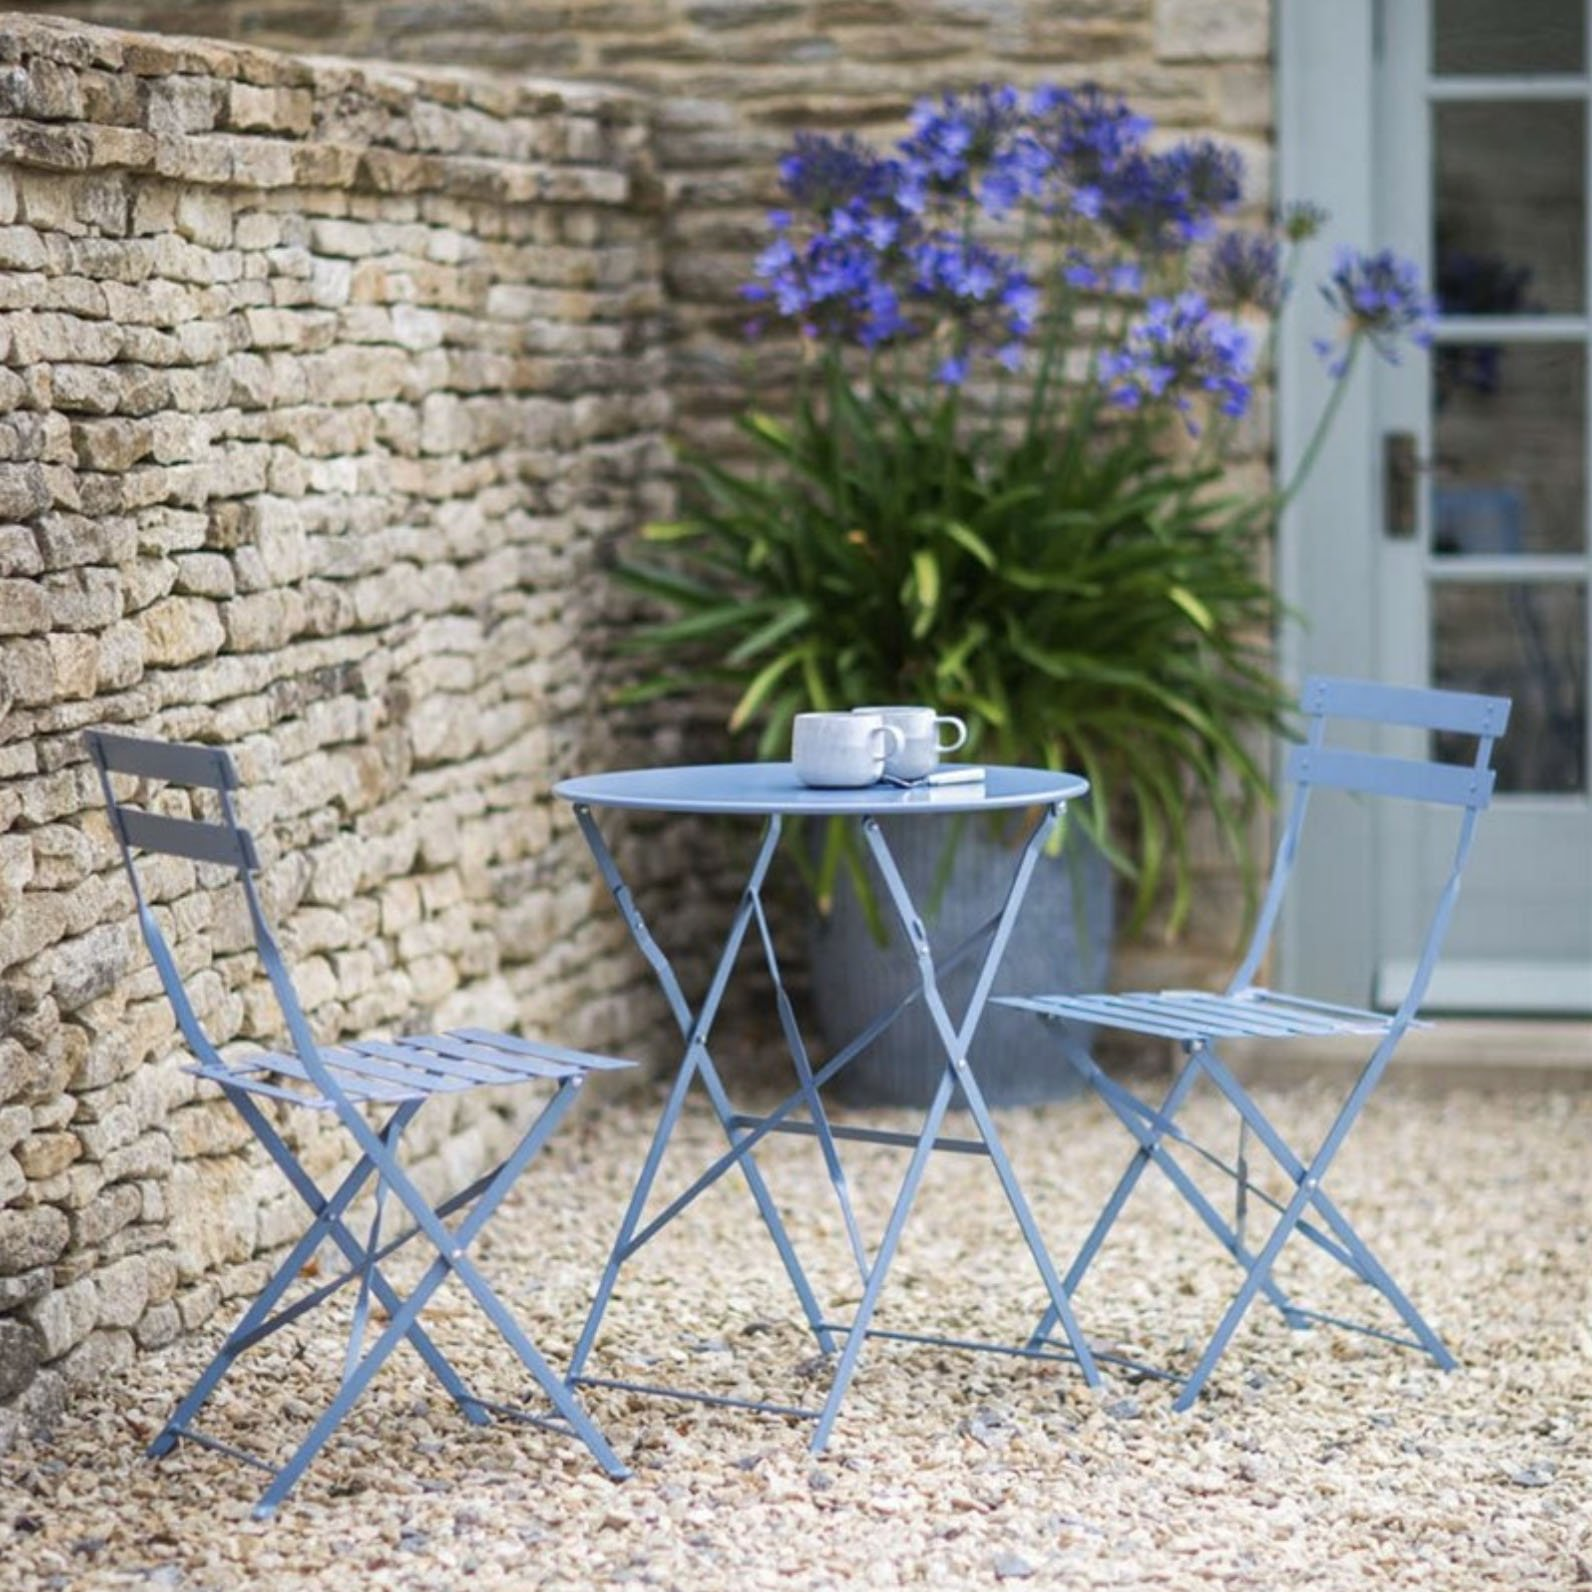 CKB LTD Garden Bistro Set Metal Outdoor - BLUE - Deluxe Weatherproof 9  Piece Garden Furniture Table And Folding Chairs For Small Patio or Balcony